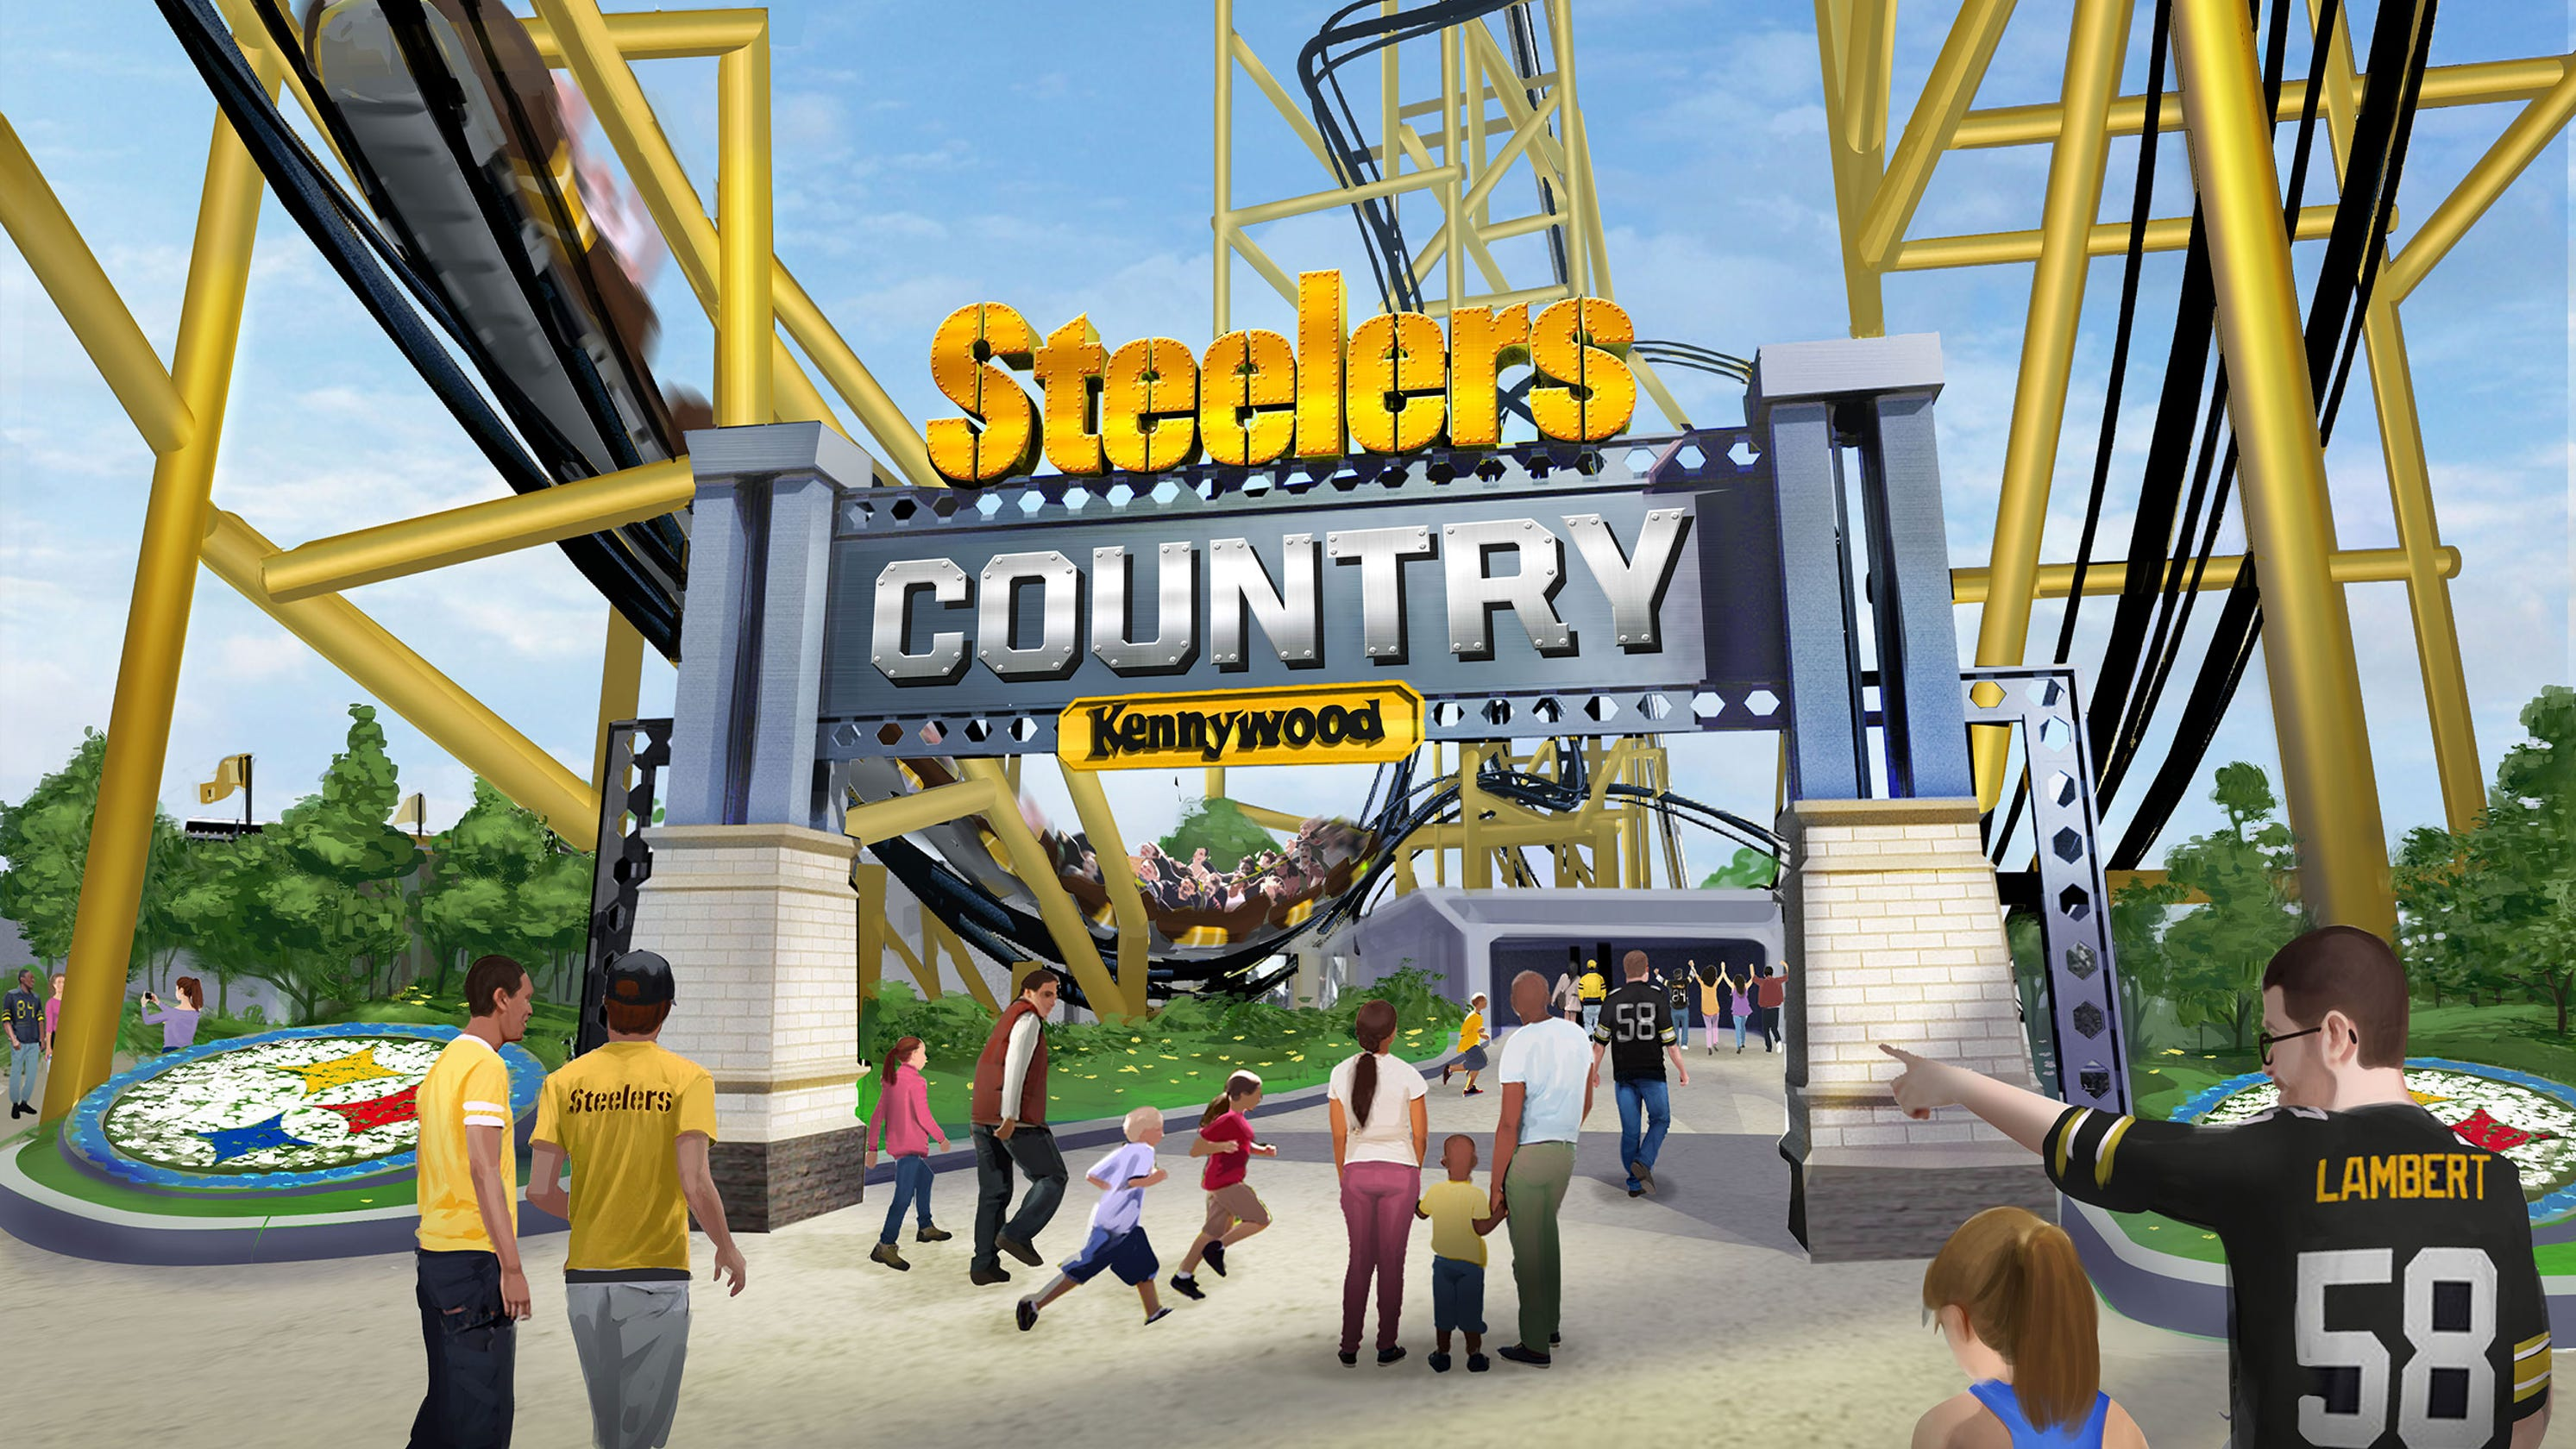 859c69295 Pittsburgh Steelers-inspired roller coaster to open at Kennywood